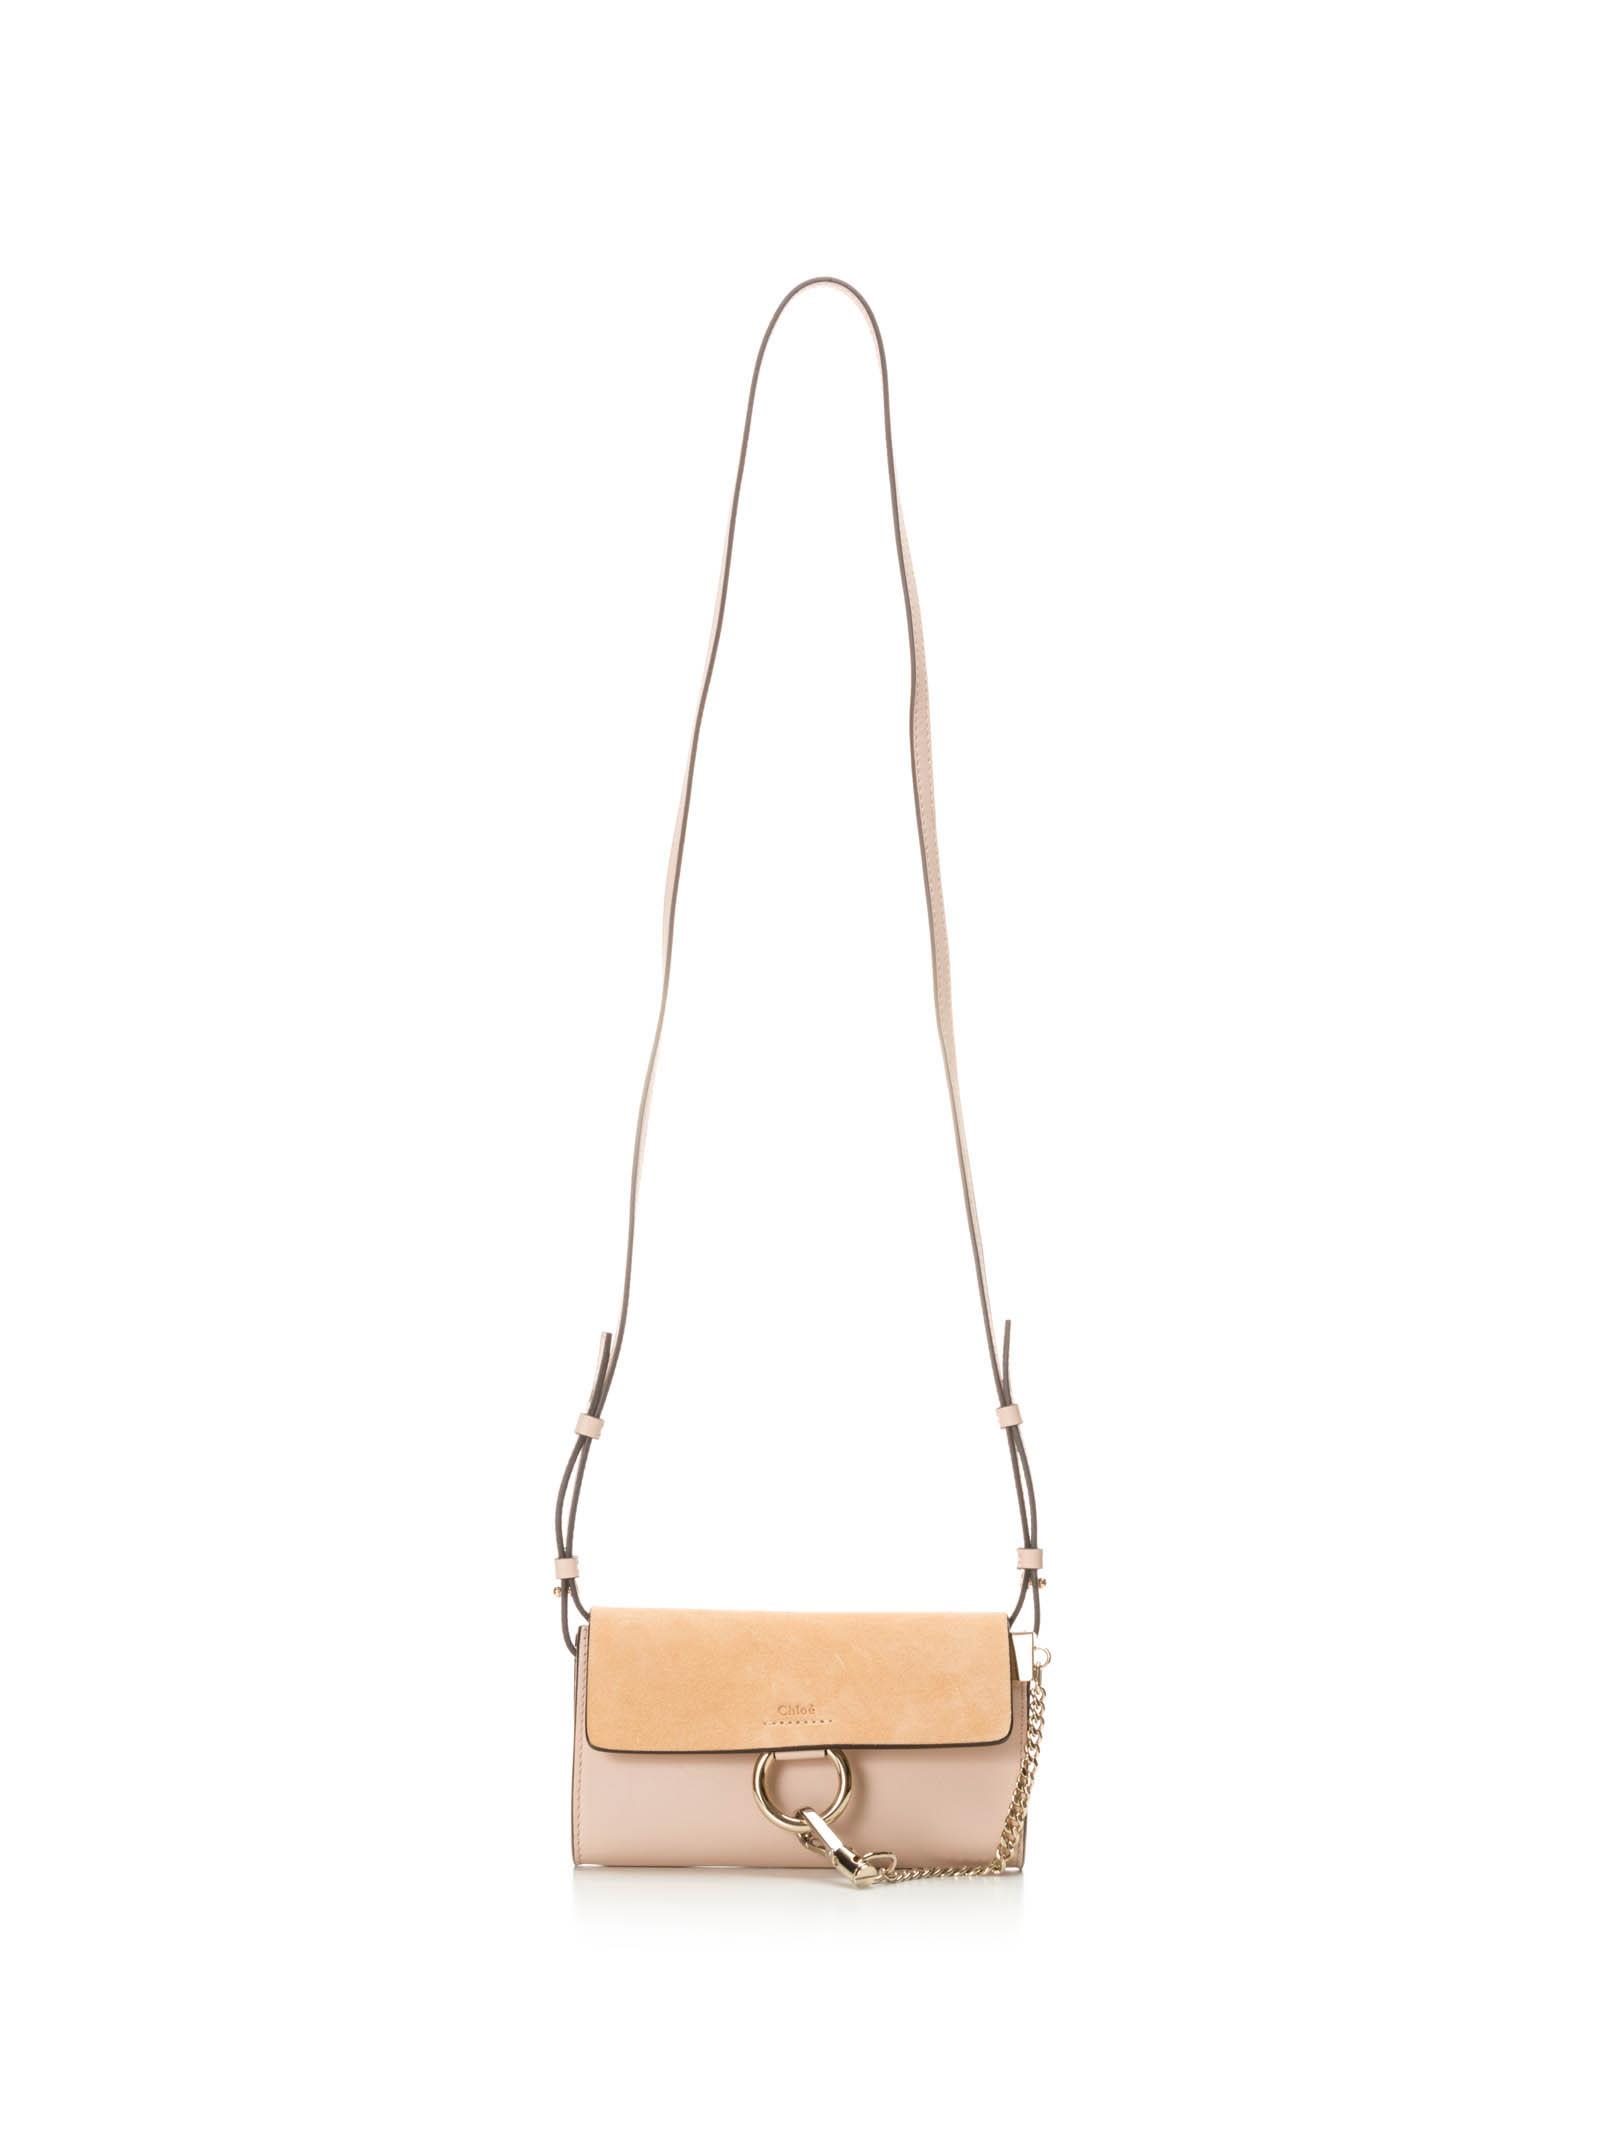 CHLOÉ CHLOE FAYE PINK WALLET ON STRAP